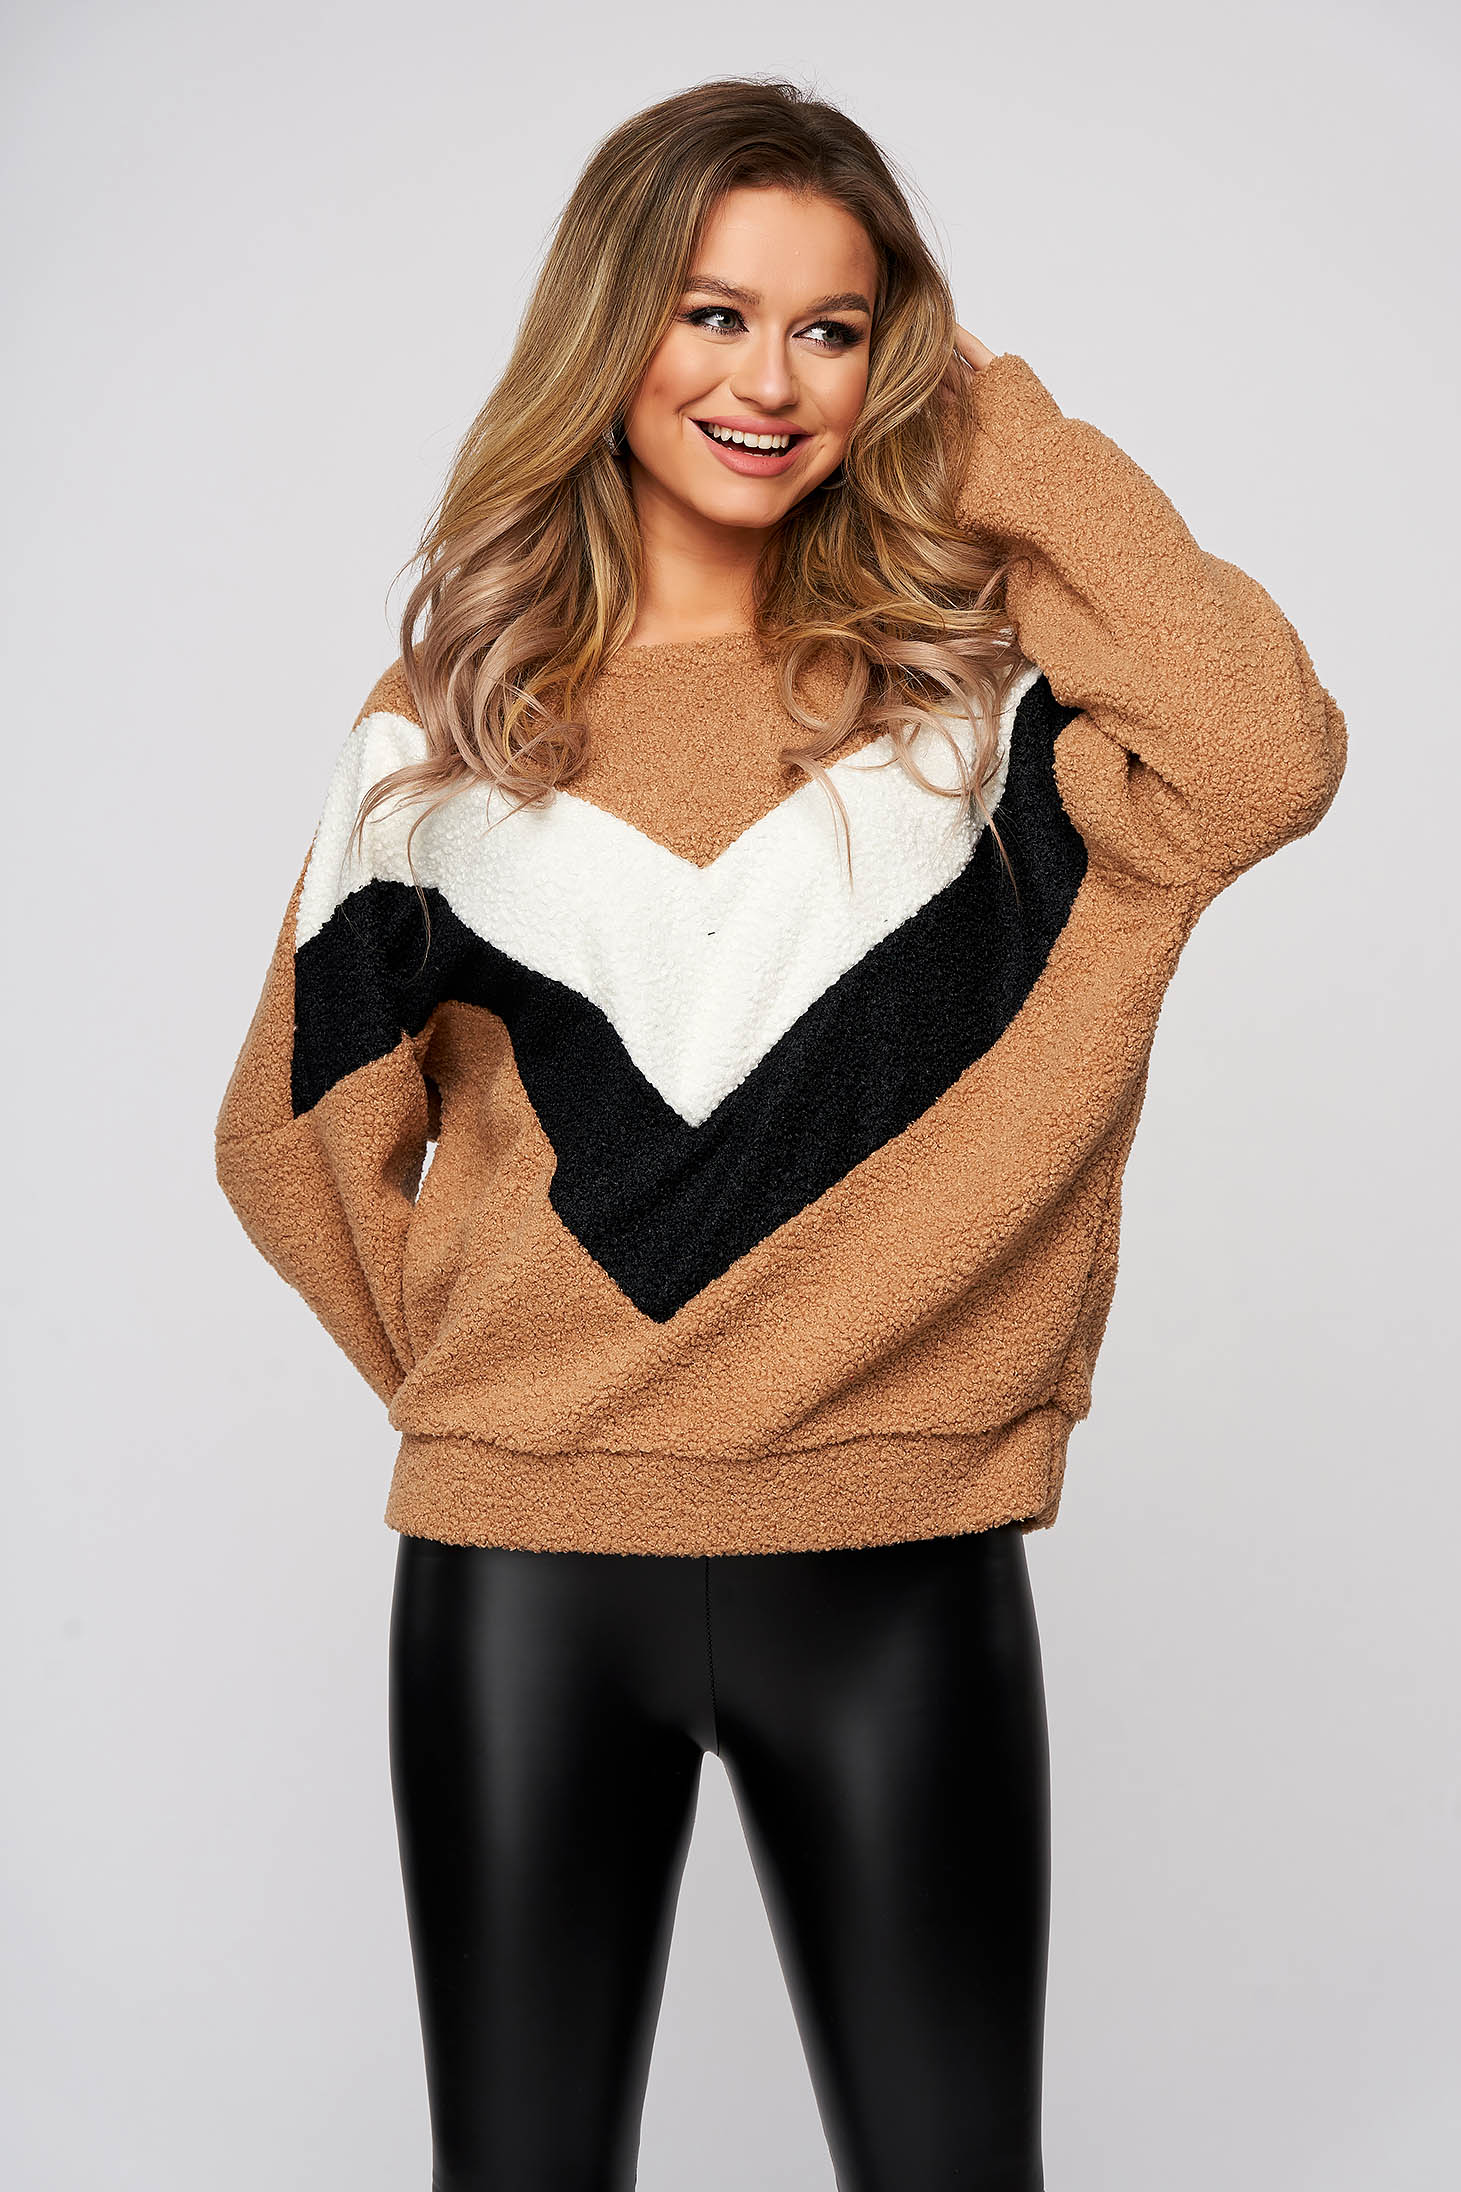 Brown sweater from elastic and fine fabric with rounded cleavage flared from fluffy fabric